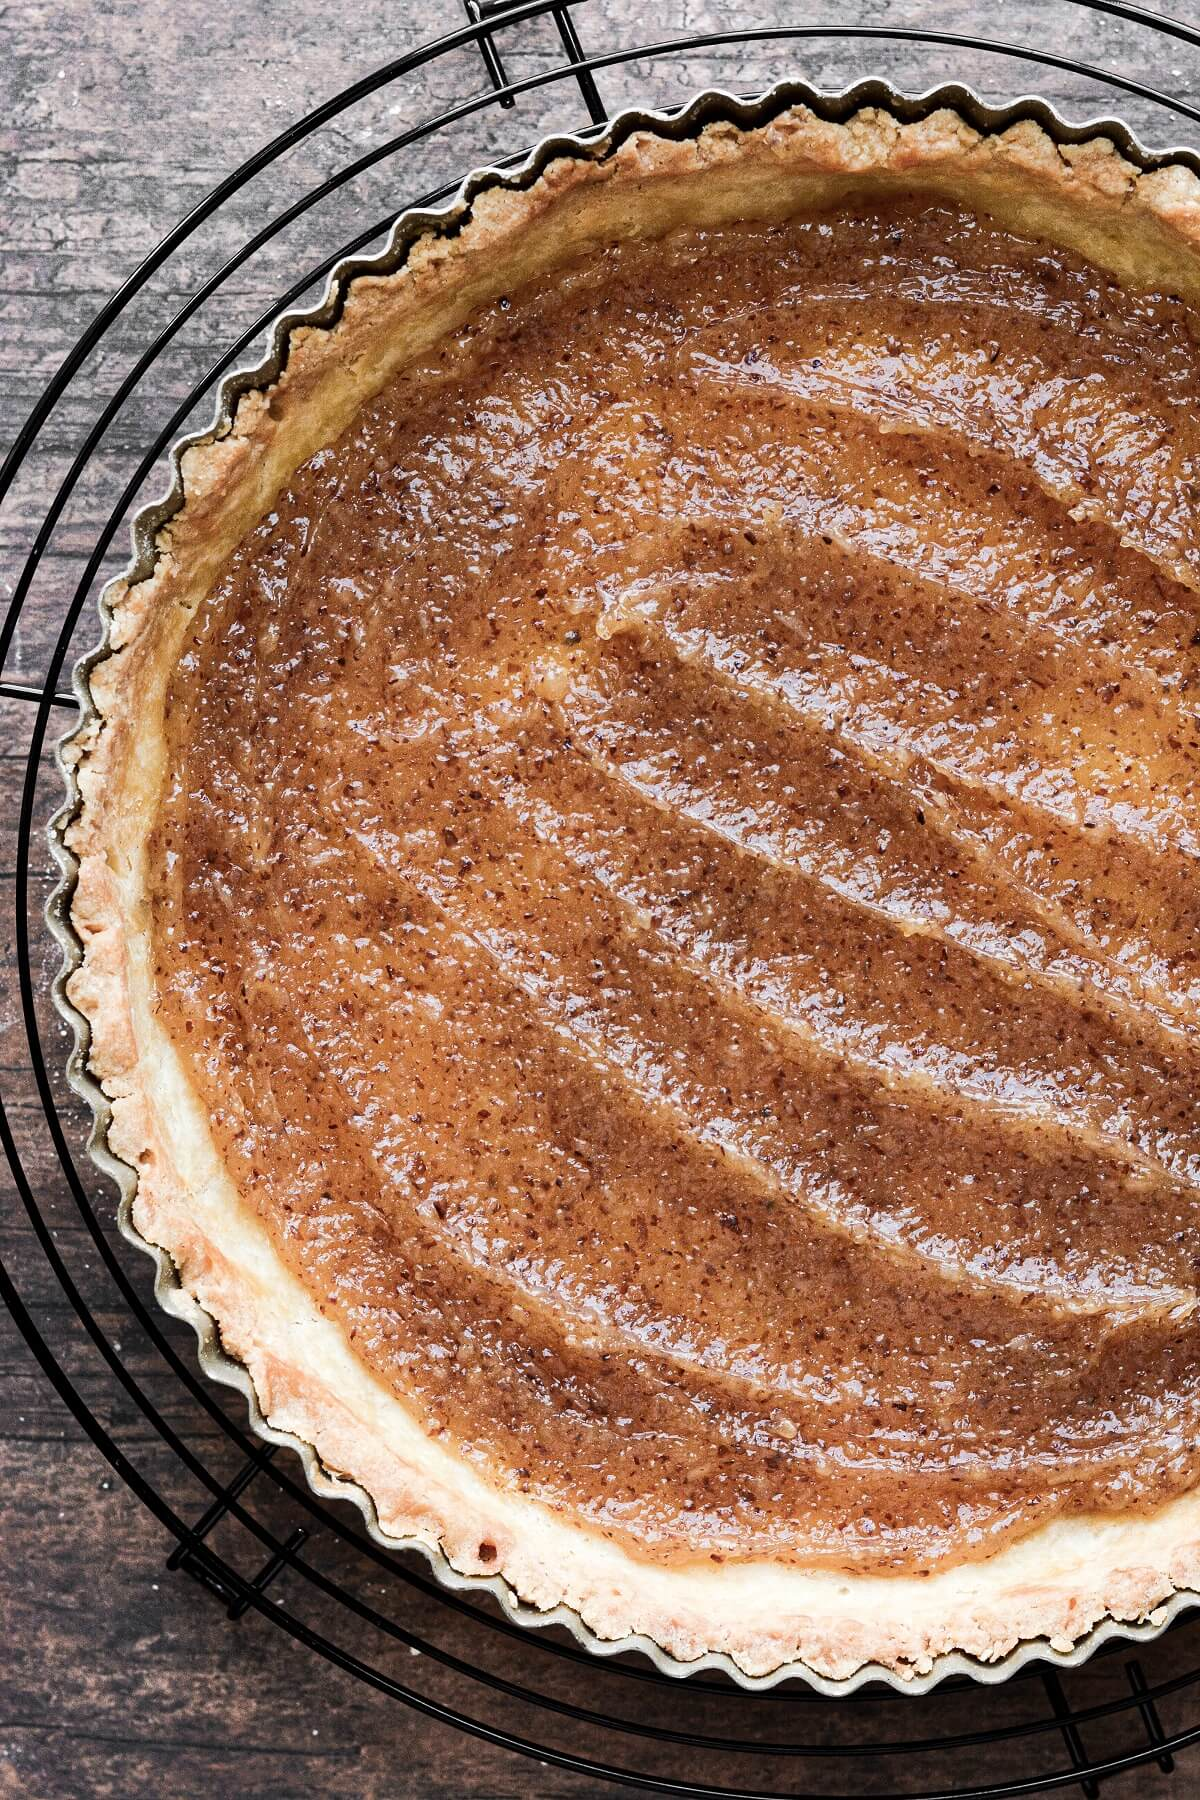 A shortbread tart crust filled with almond pastry filling.